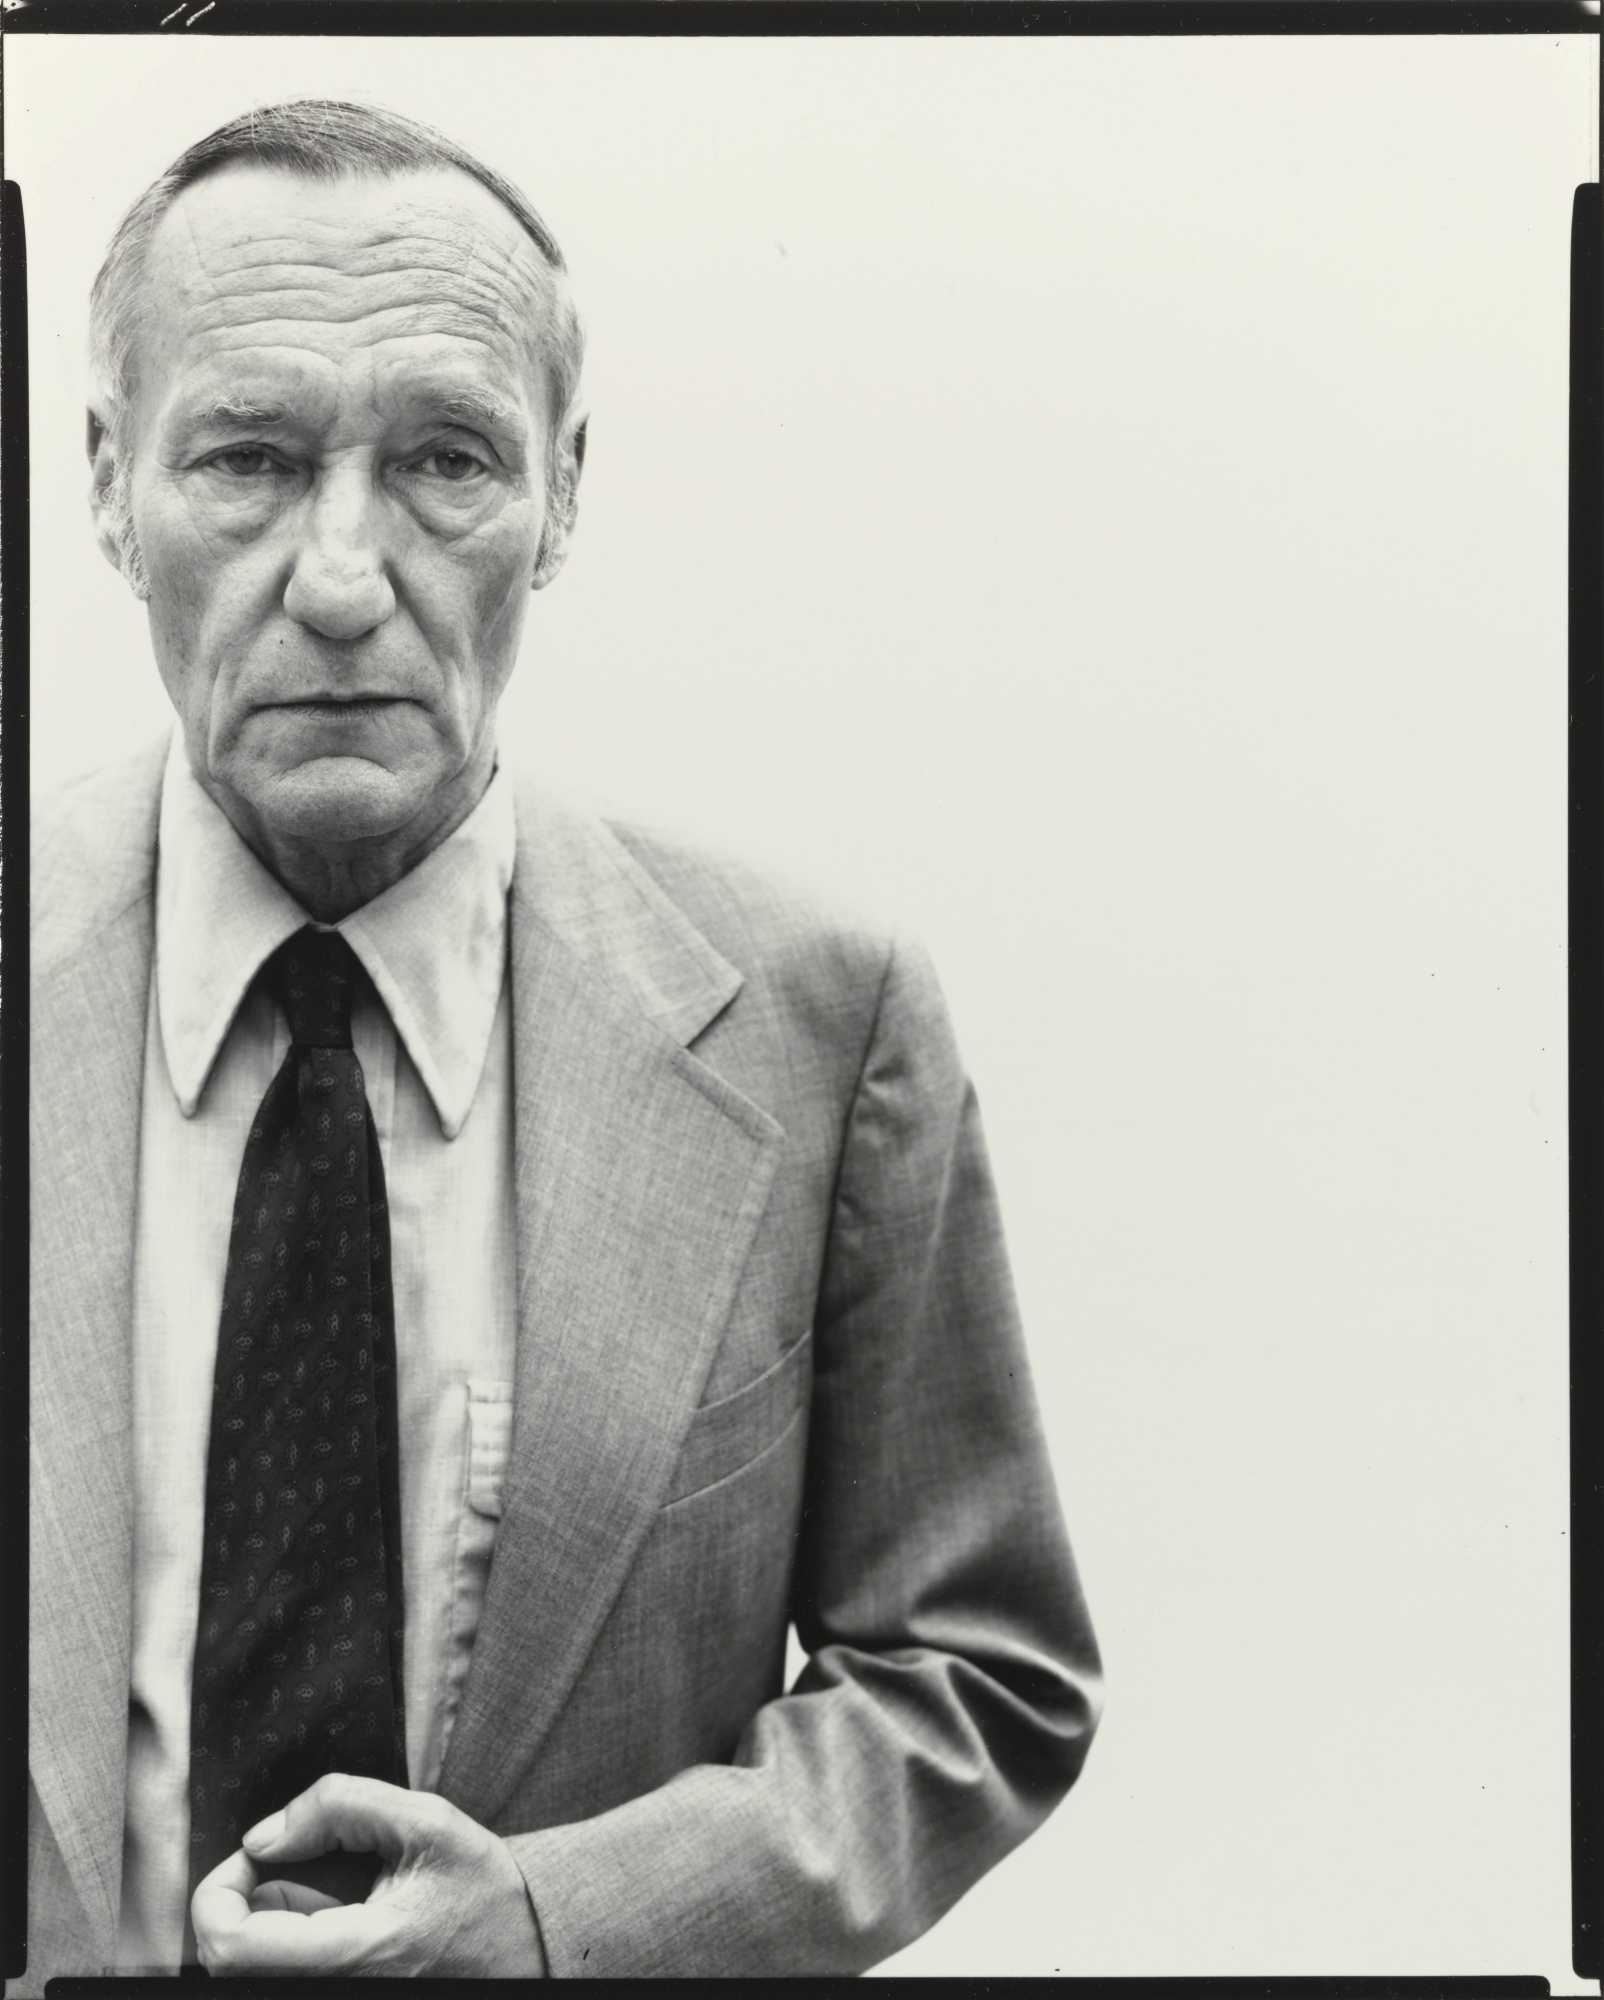 Richard Avedon-William Burroughs, Writer, New York City-1975